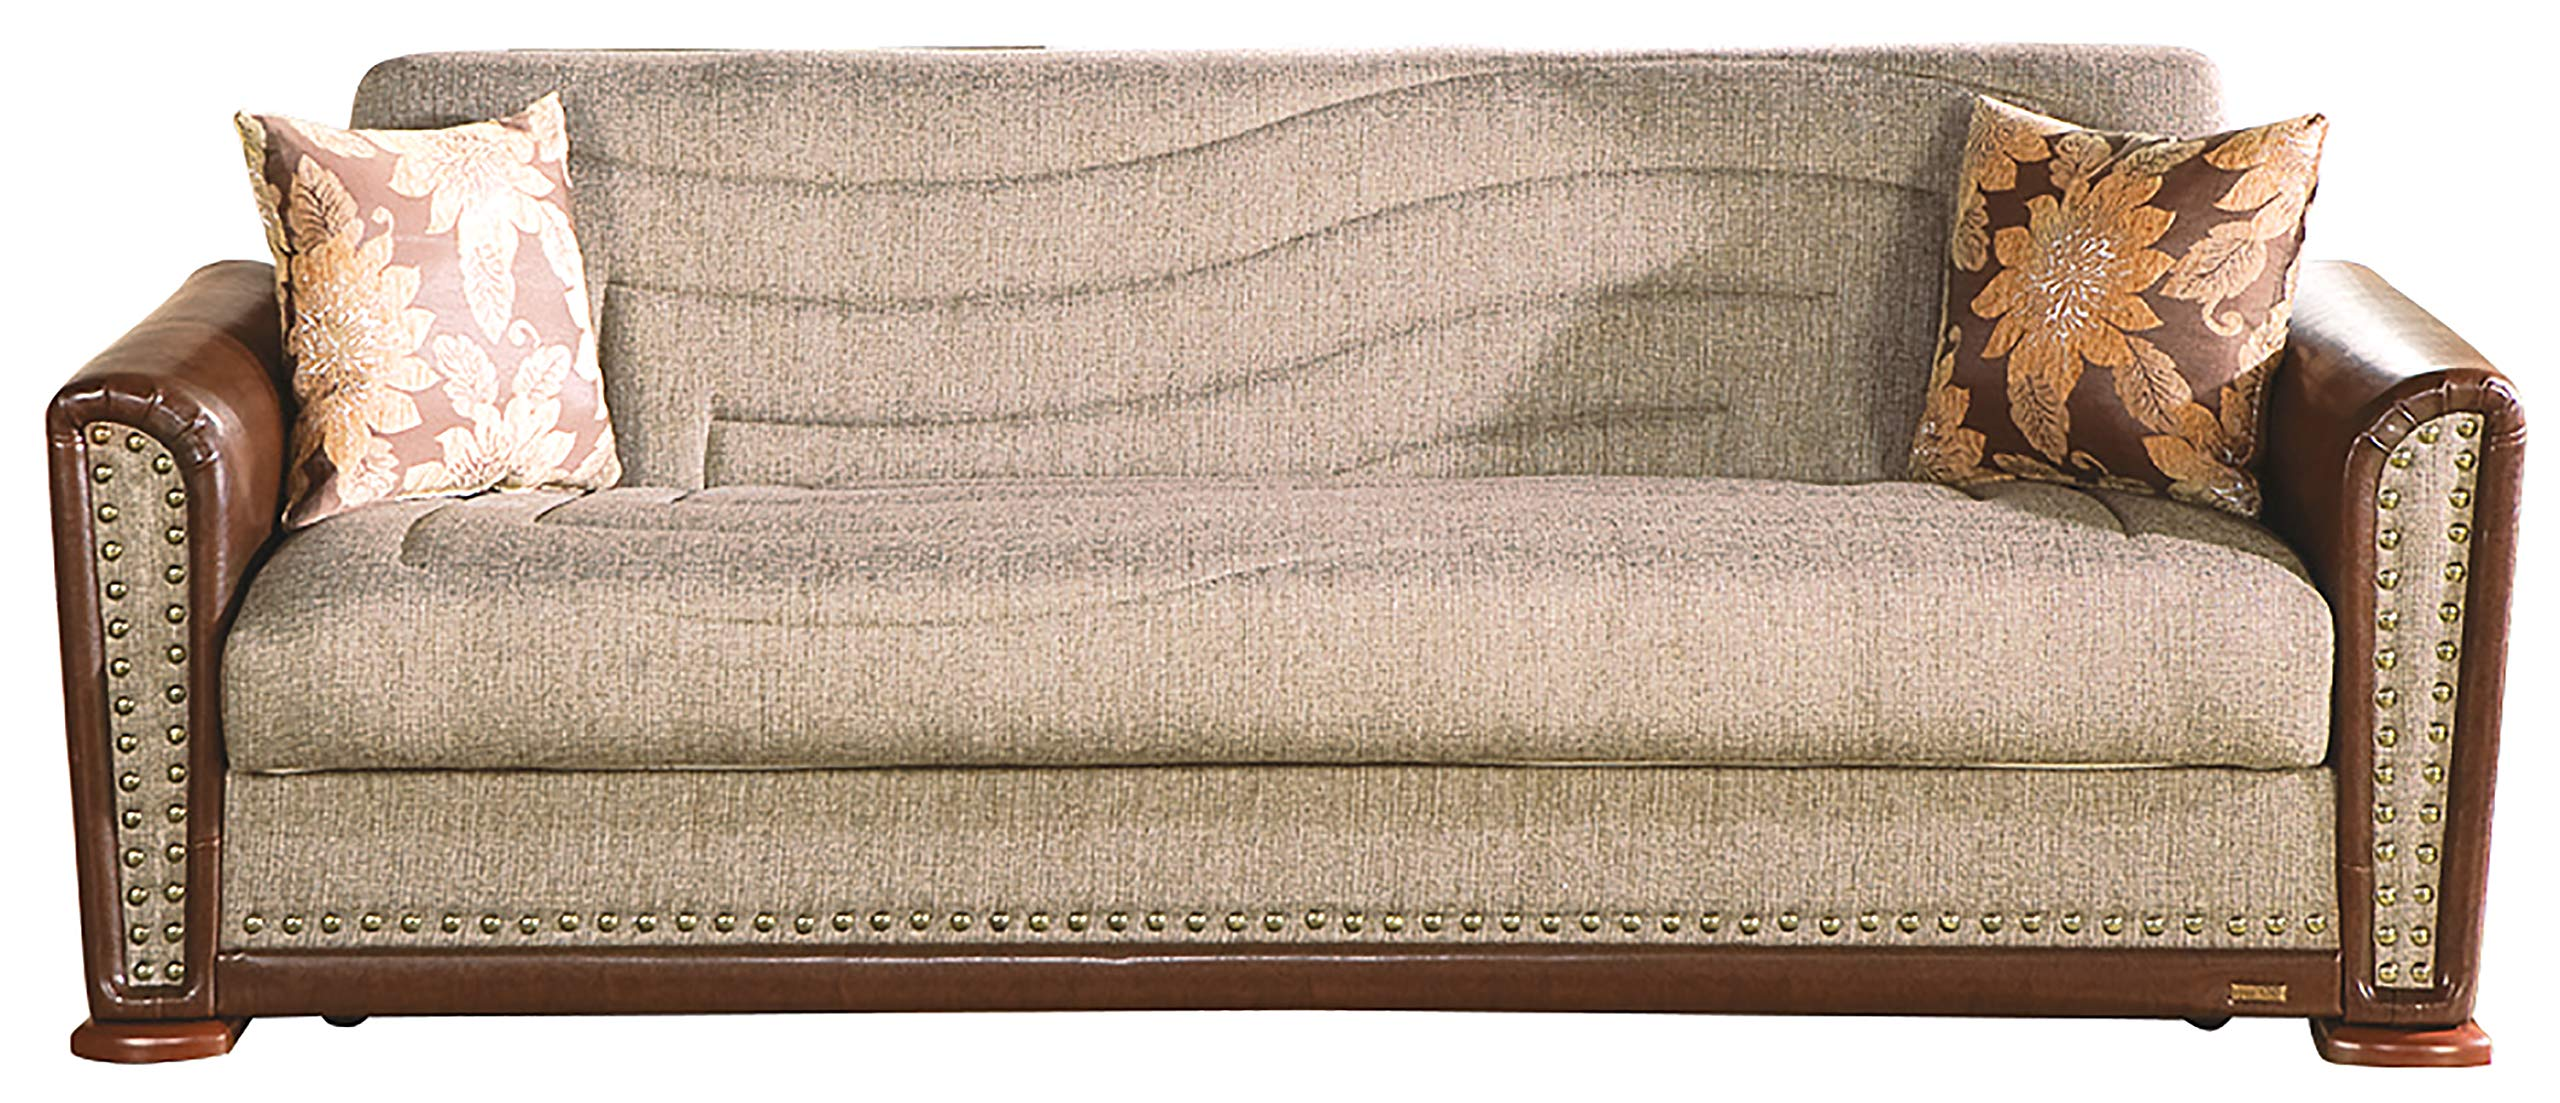 Istikbal Alfa Sofa Bed in Redeyef Brown -  - sofas-couches, living-room-furniture, living-room - 81x 3JSqkVL -